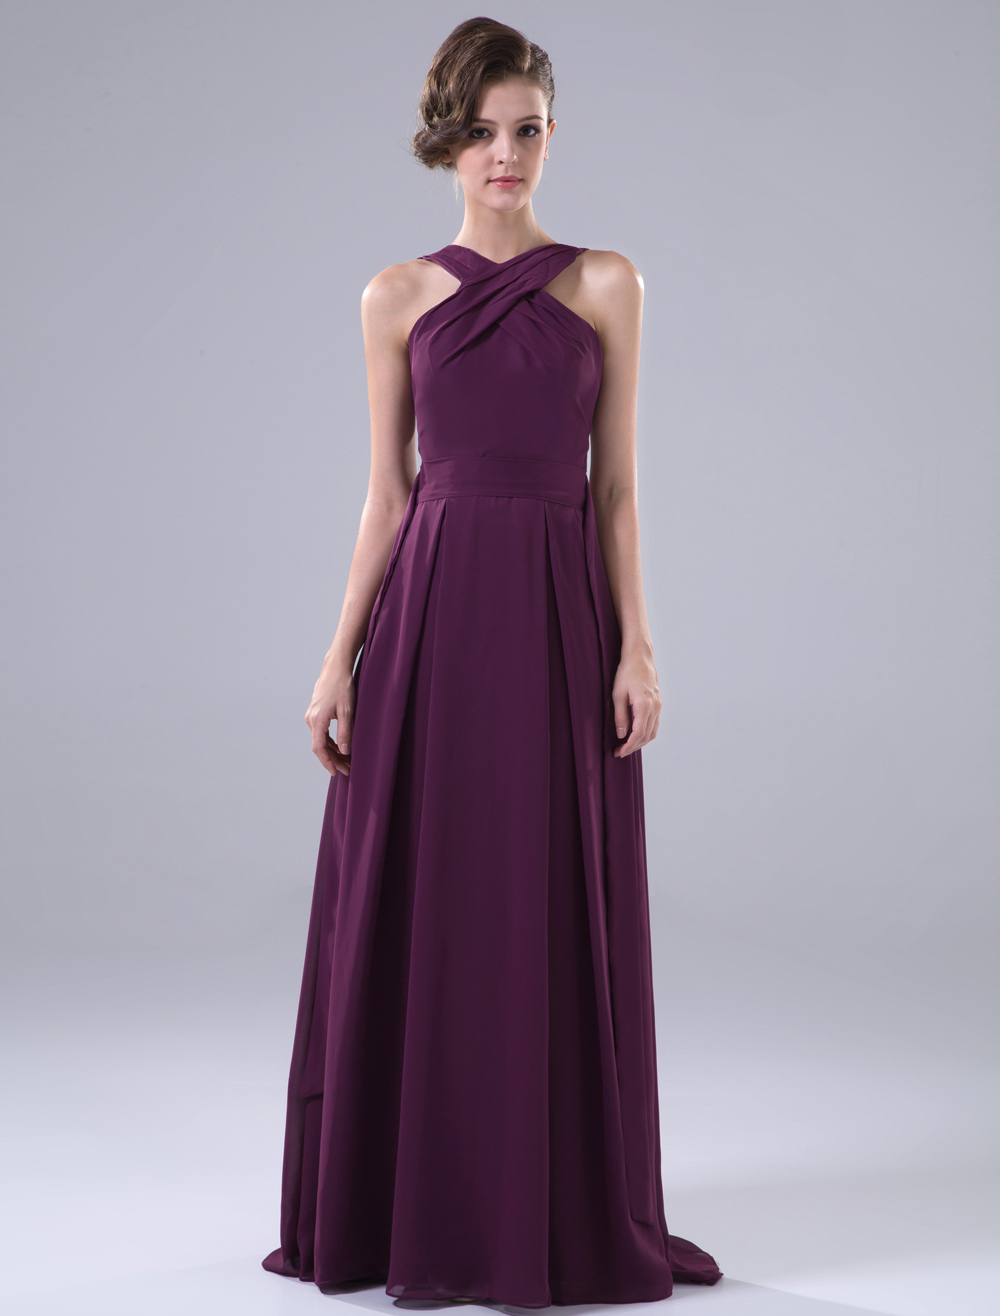 Pretty Floor-Length Halter A-line Purple Bridesmaid Dress